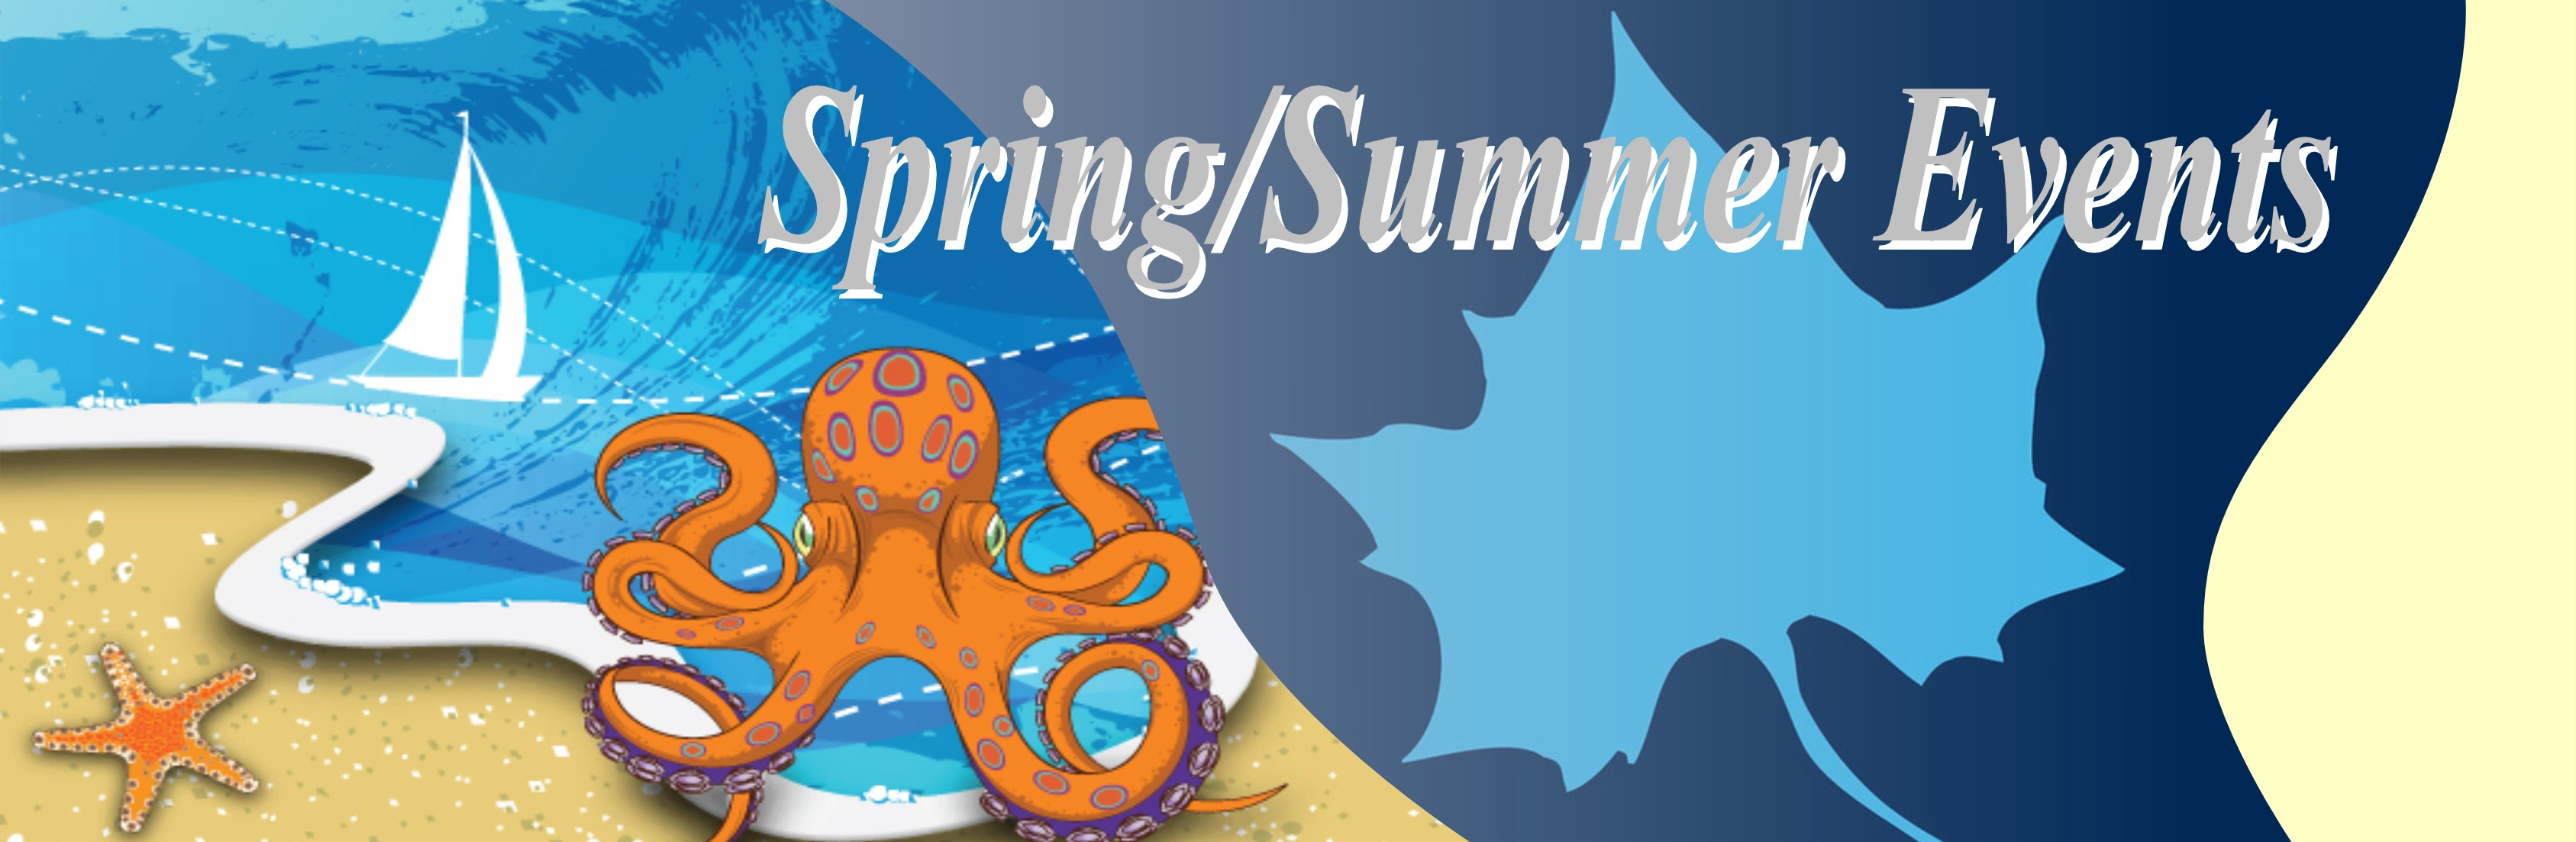 Spring Summer events